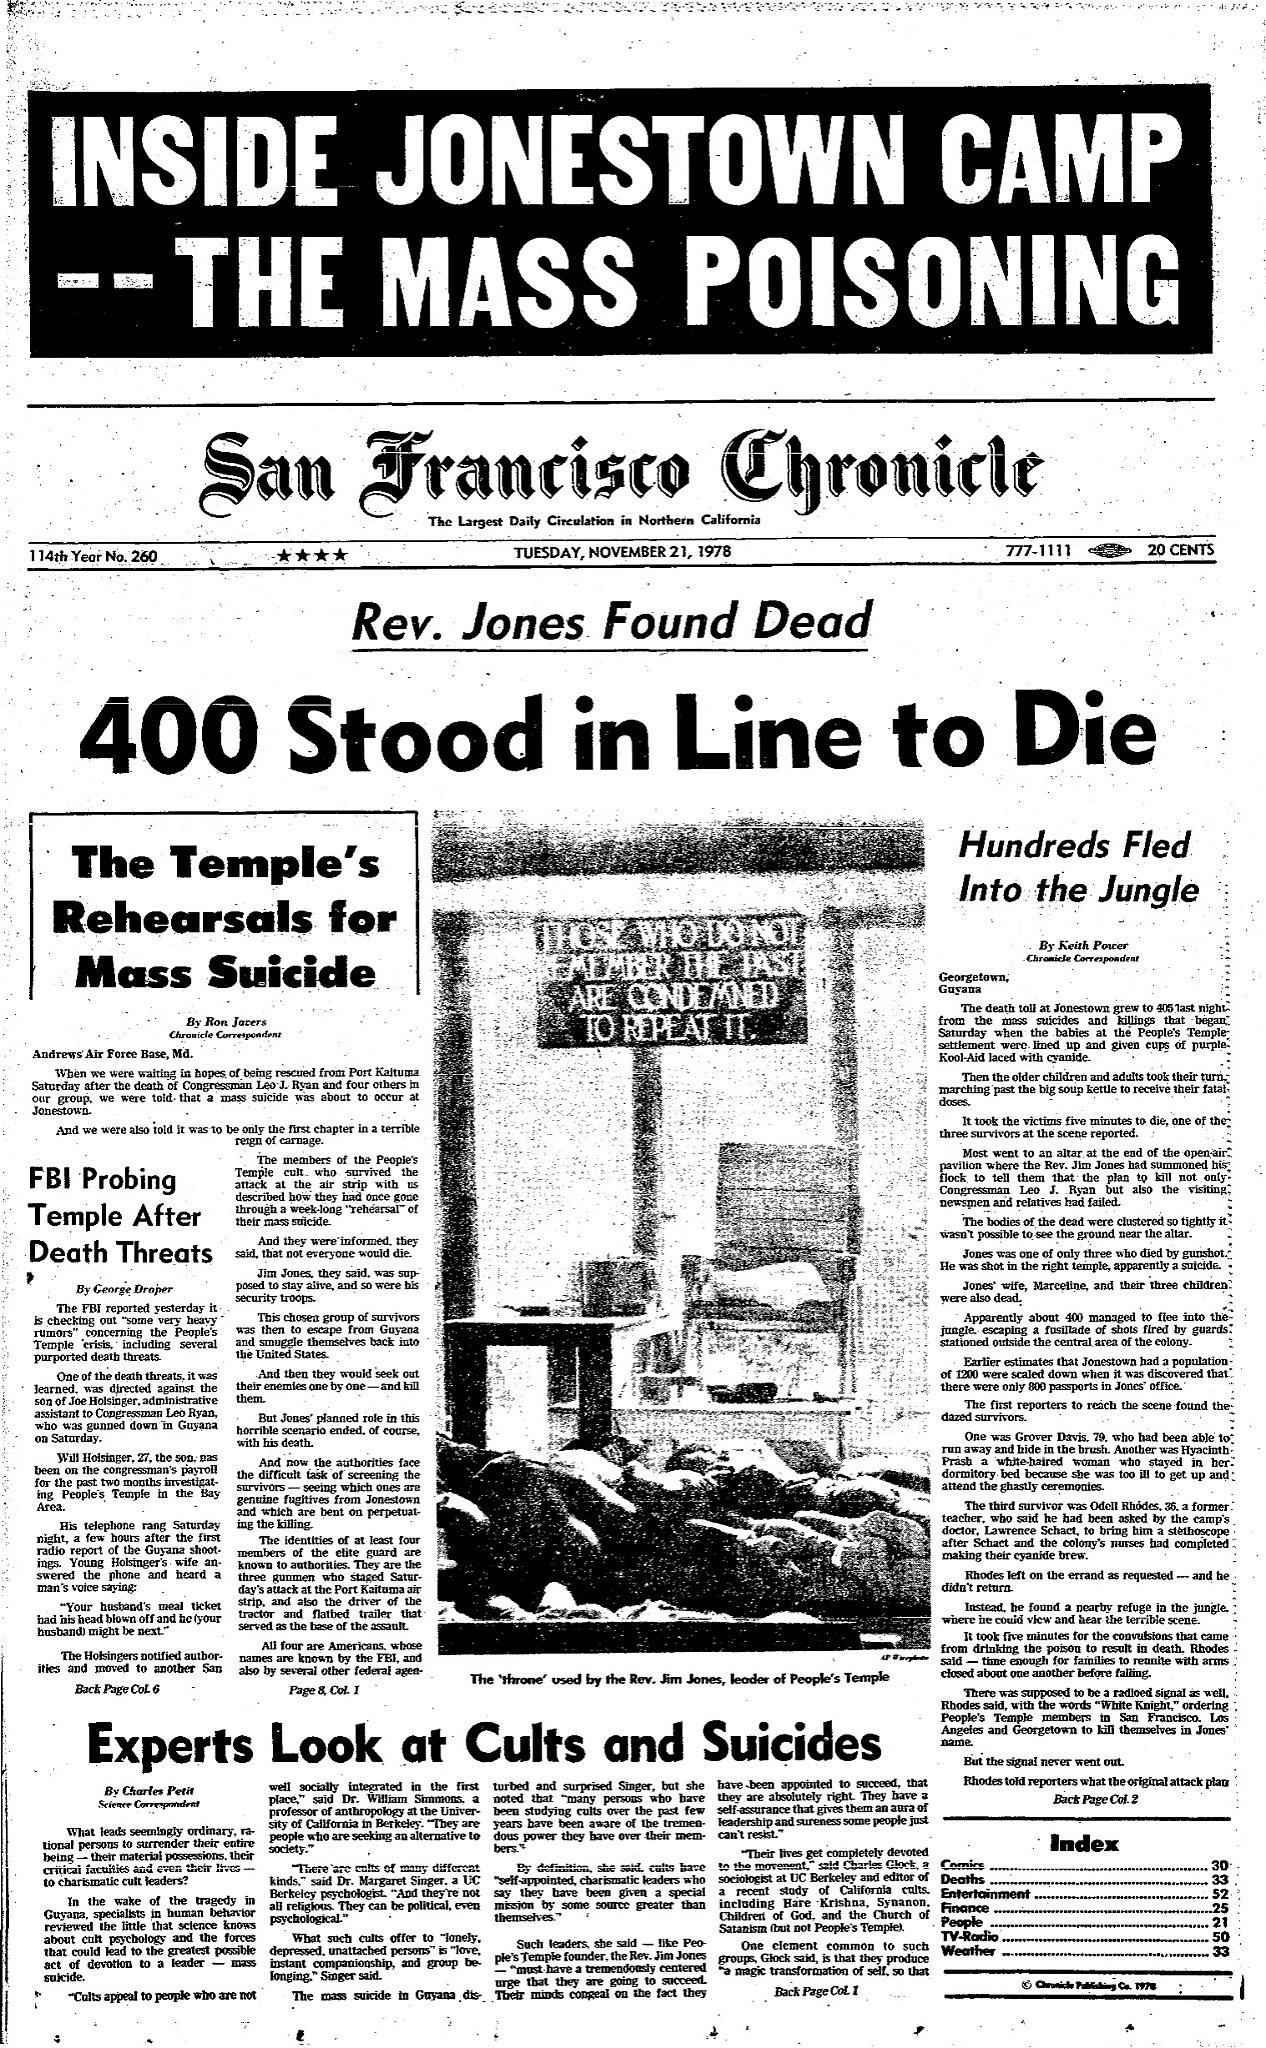 Customers who purchase a San Francisco Chronicle subscription receive comprehensive and in-depth news coverage. A well respected newspaper with strong local focus, compelling feature articles and sharp editorial content, San Francisco Chronicle newspaper readers are always well informed.